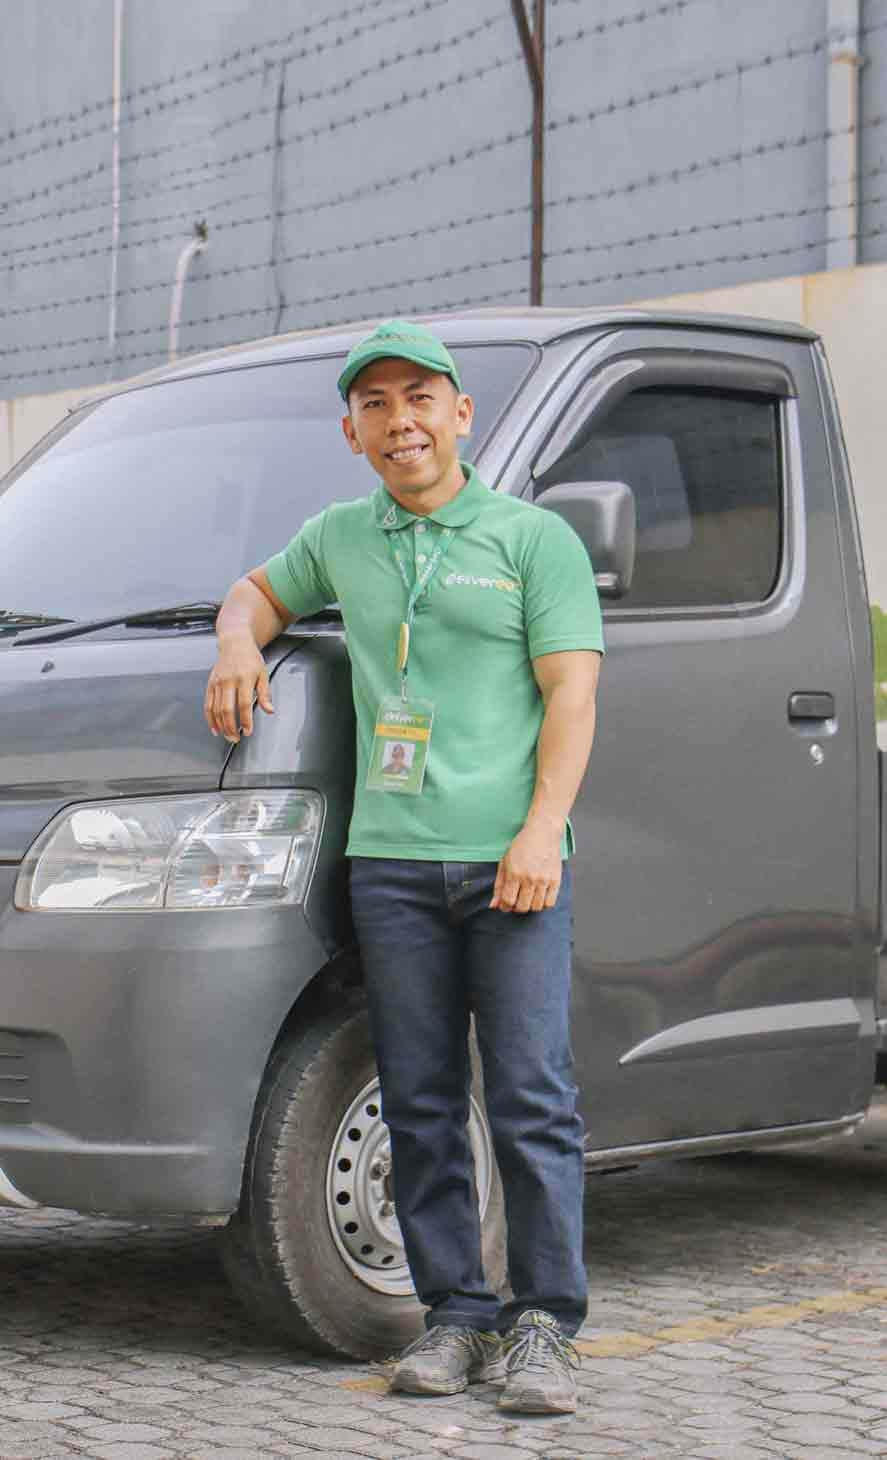 Deliveree Pickup Truck Driver Image